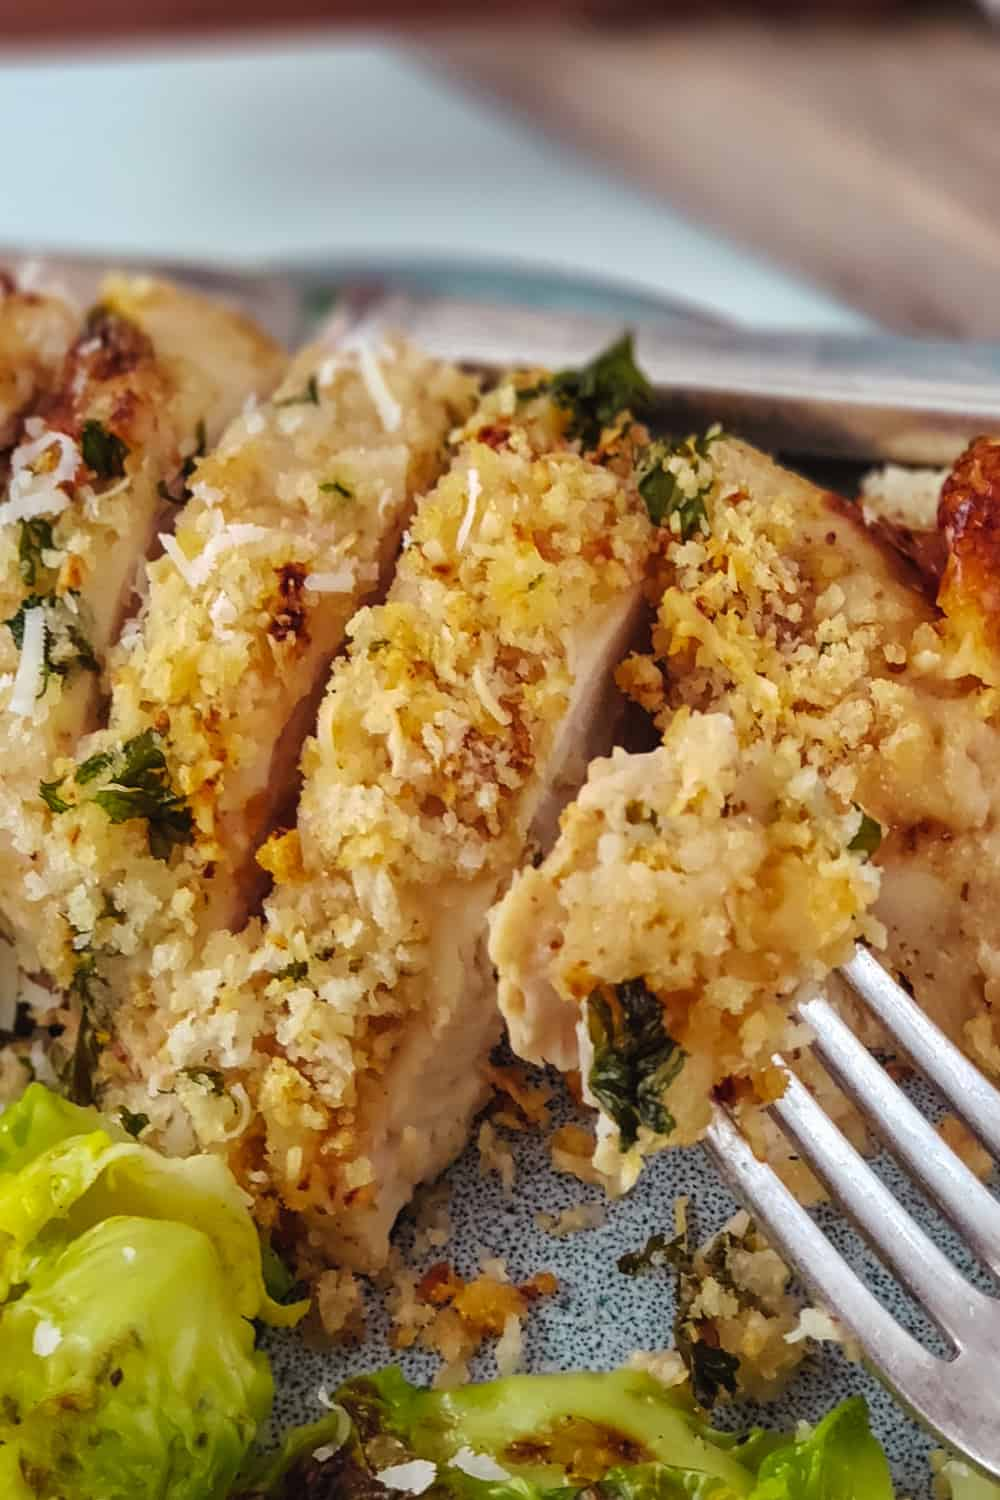 Tired of the same old chicken recipe for dinner? Mix things up with this easy and delicious Parmesan Dijon Chicken recipe for weeknight dinner. This easy parmesan crusted chicken recipe will have family asking for seconds. Add this easy chicken recipe to your weeknight meal plan. #chickenrecipe